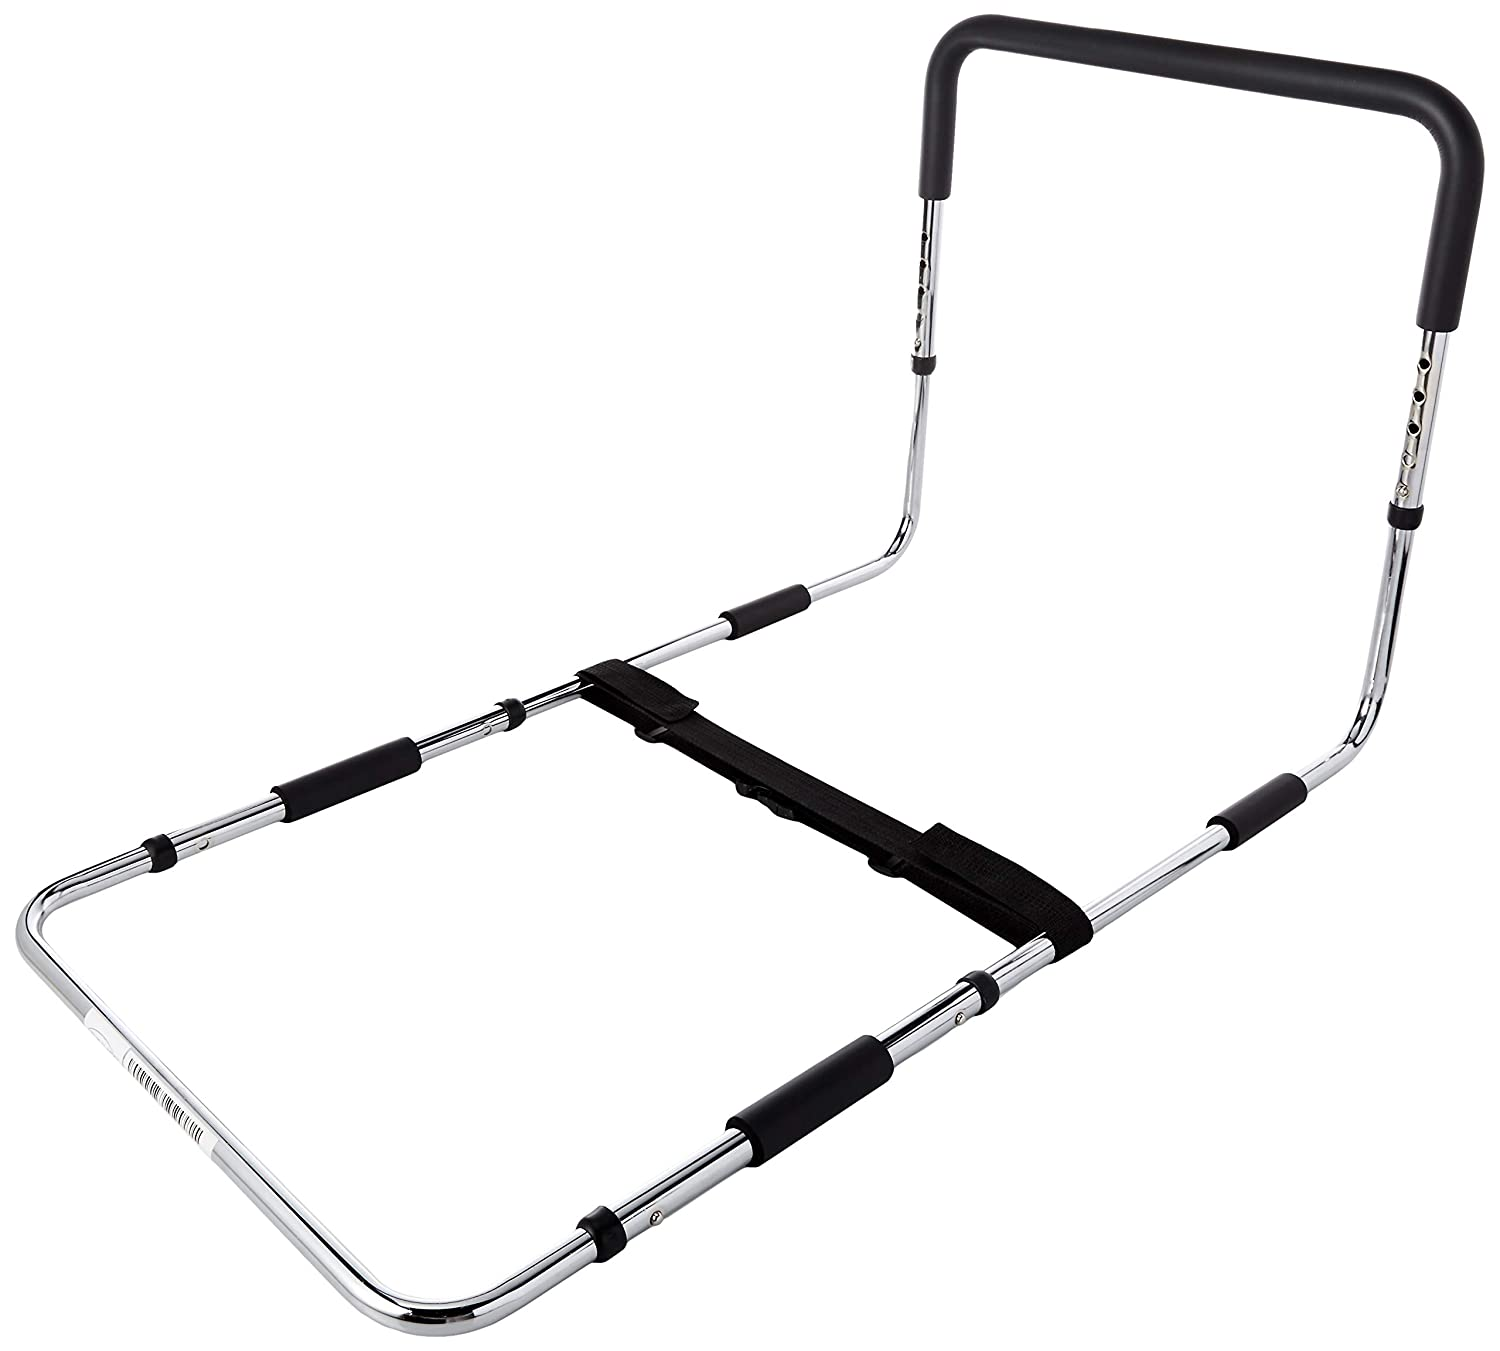 Super Height Adjustable Sturdy Home Bed Rail Good For Any Bed Tool Free Bed Assist Bar For Adults Seniors Elderly Handicap Adjustable Safety Guard Ocoug Best Dining Table And Chair Ideas Images Ocougorg